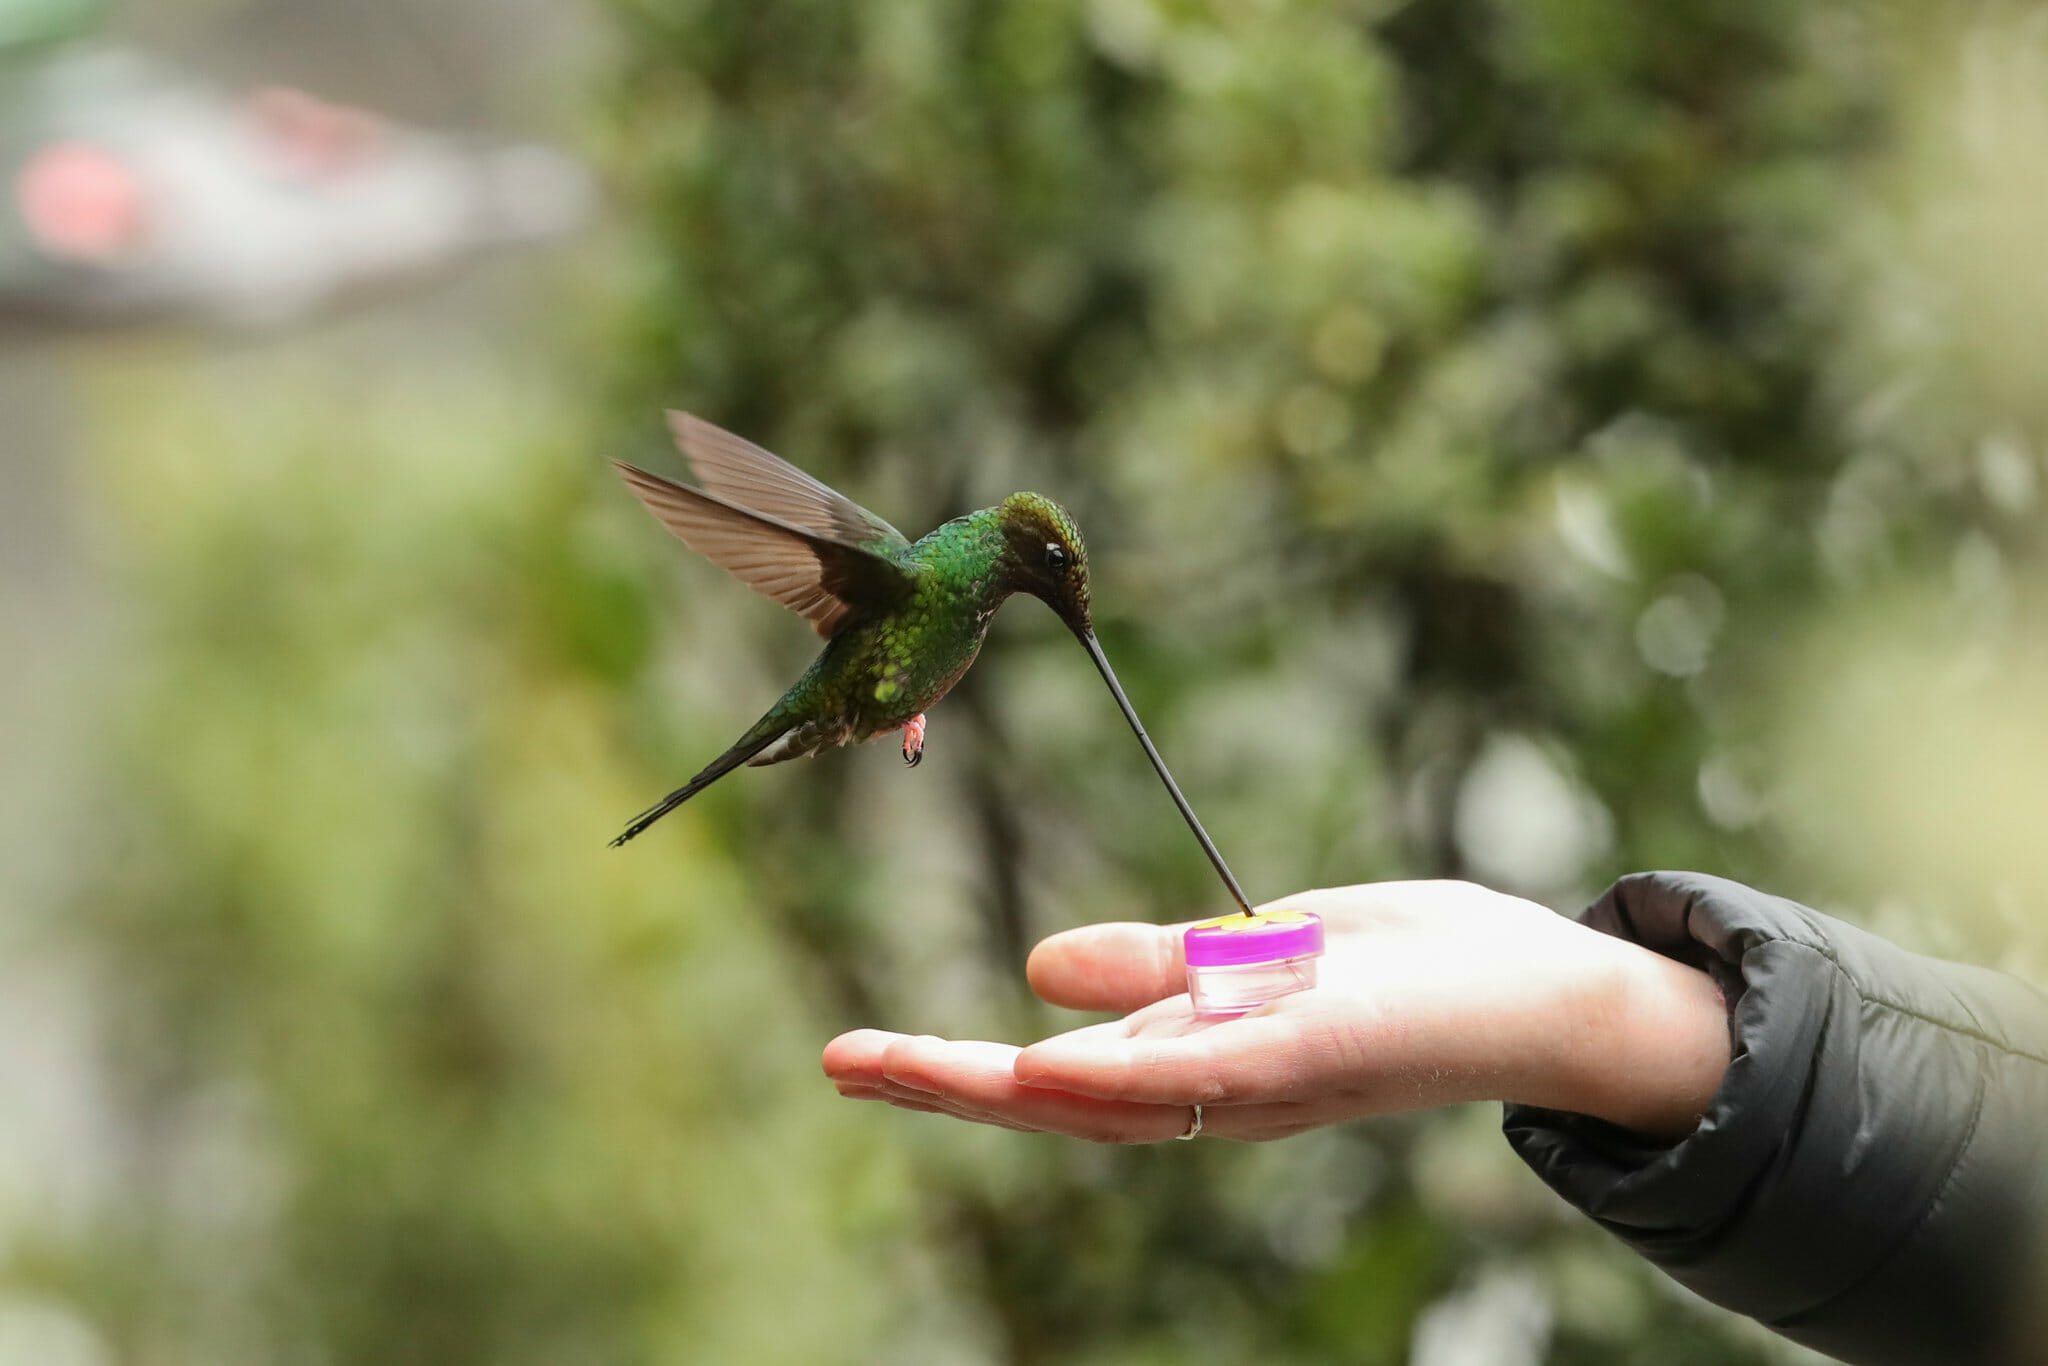 do hummingbirds recognize humans